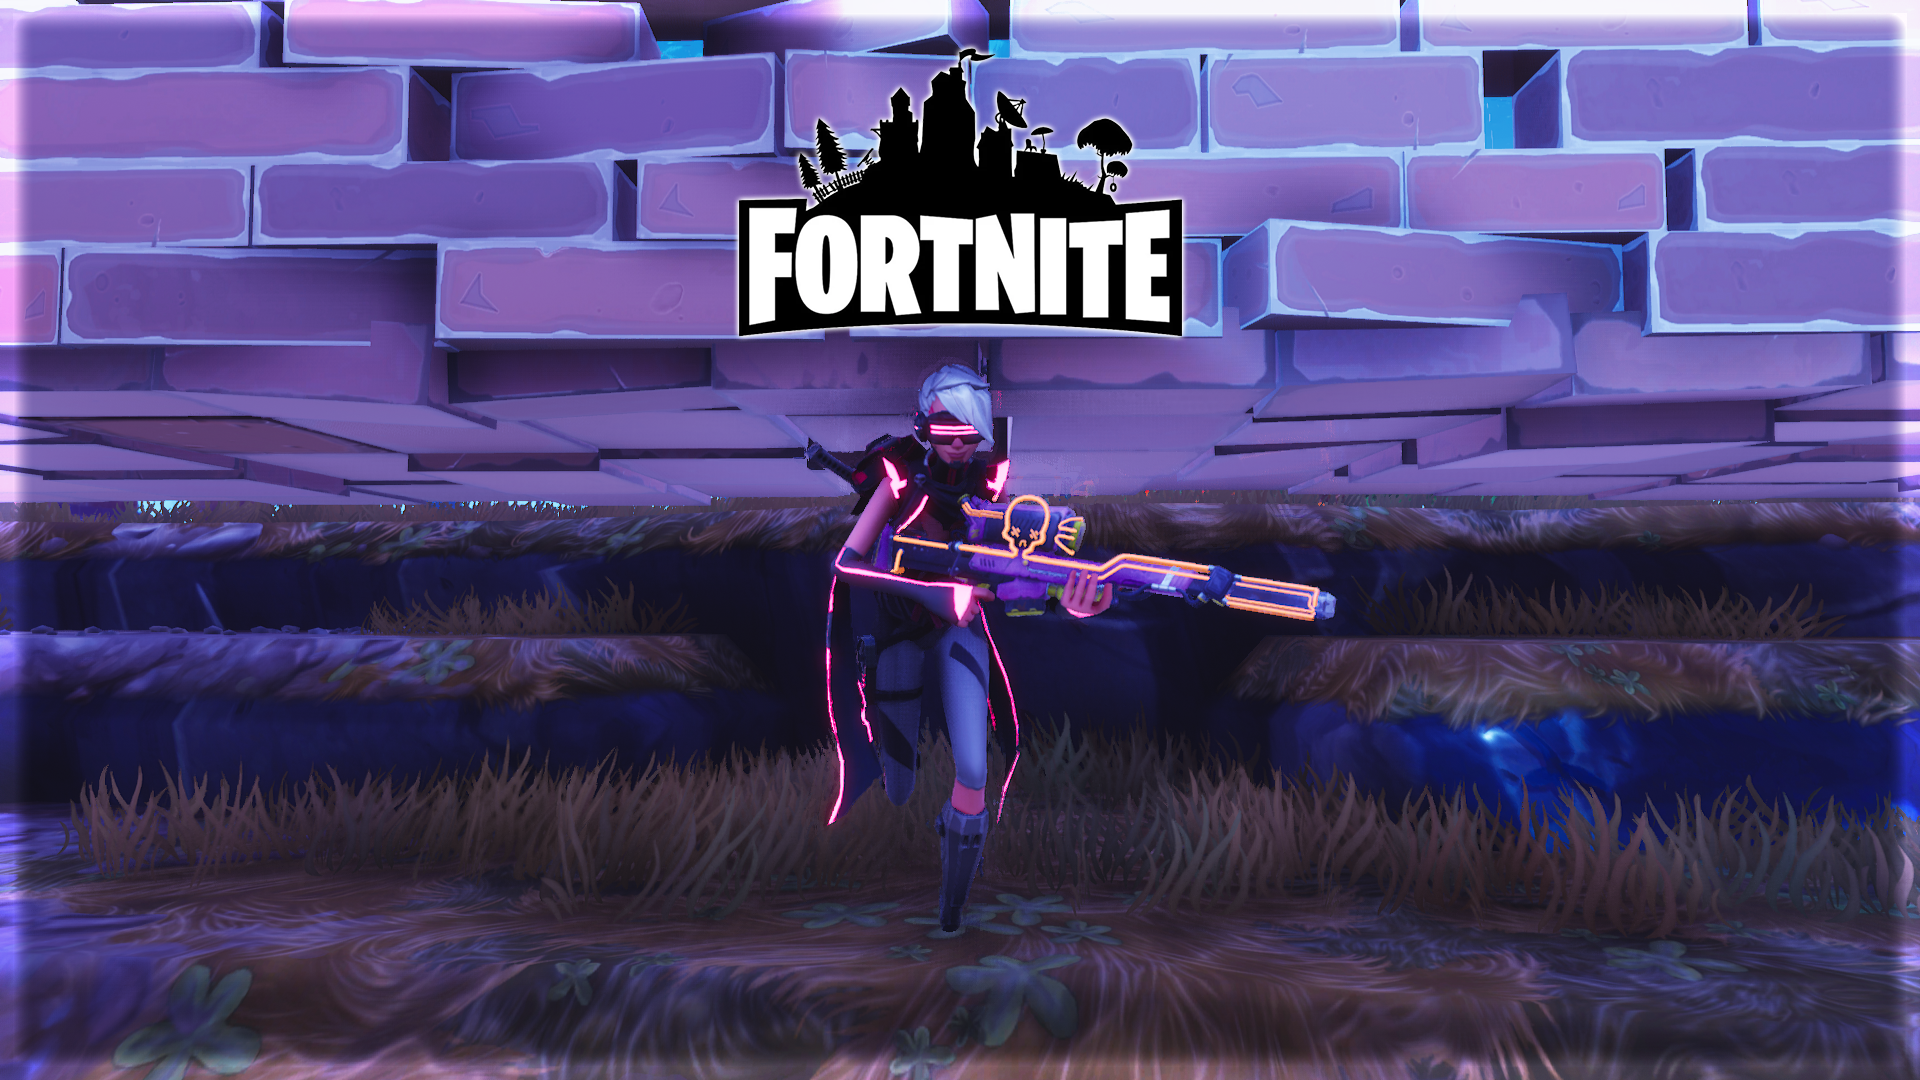 Fortnite Background Hd Posted By Zoey Thompson